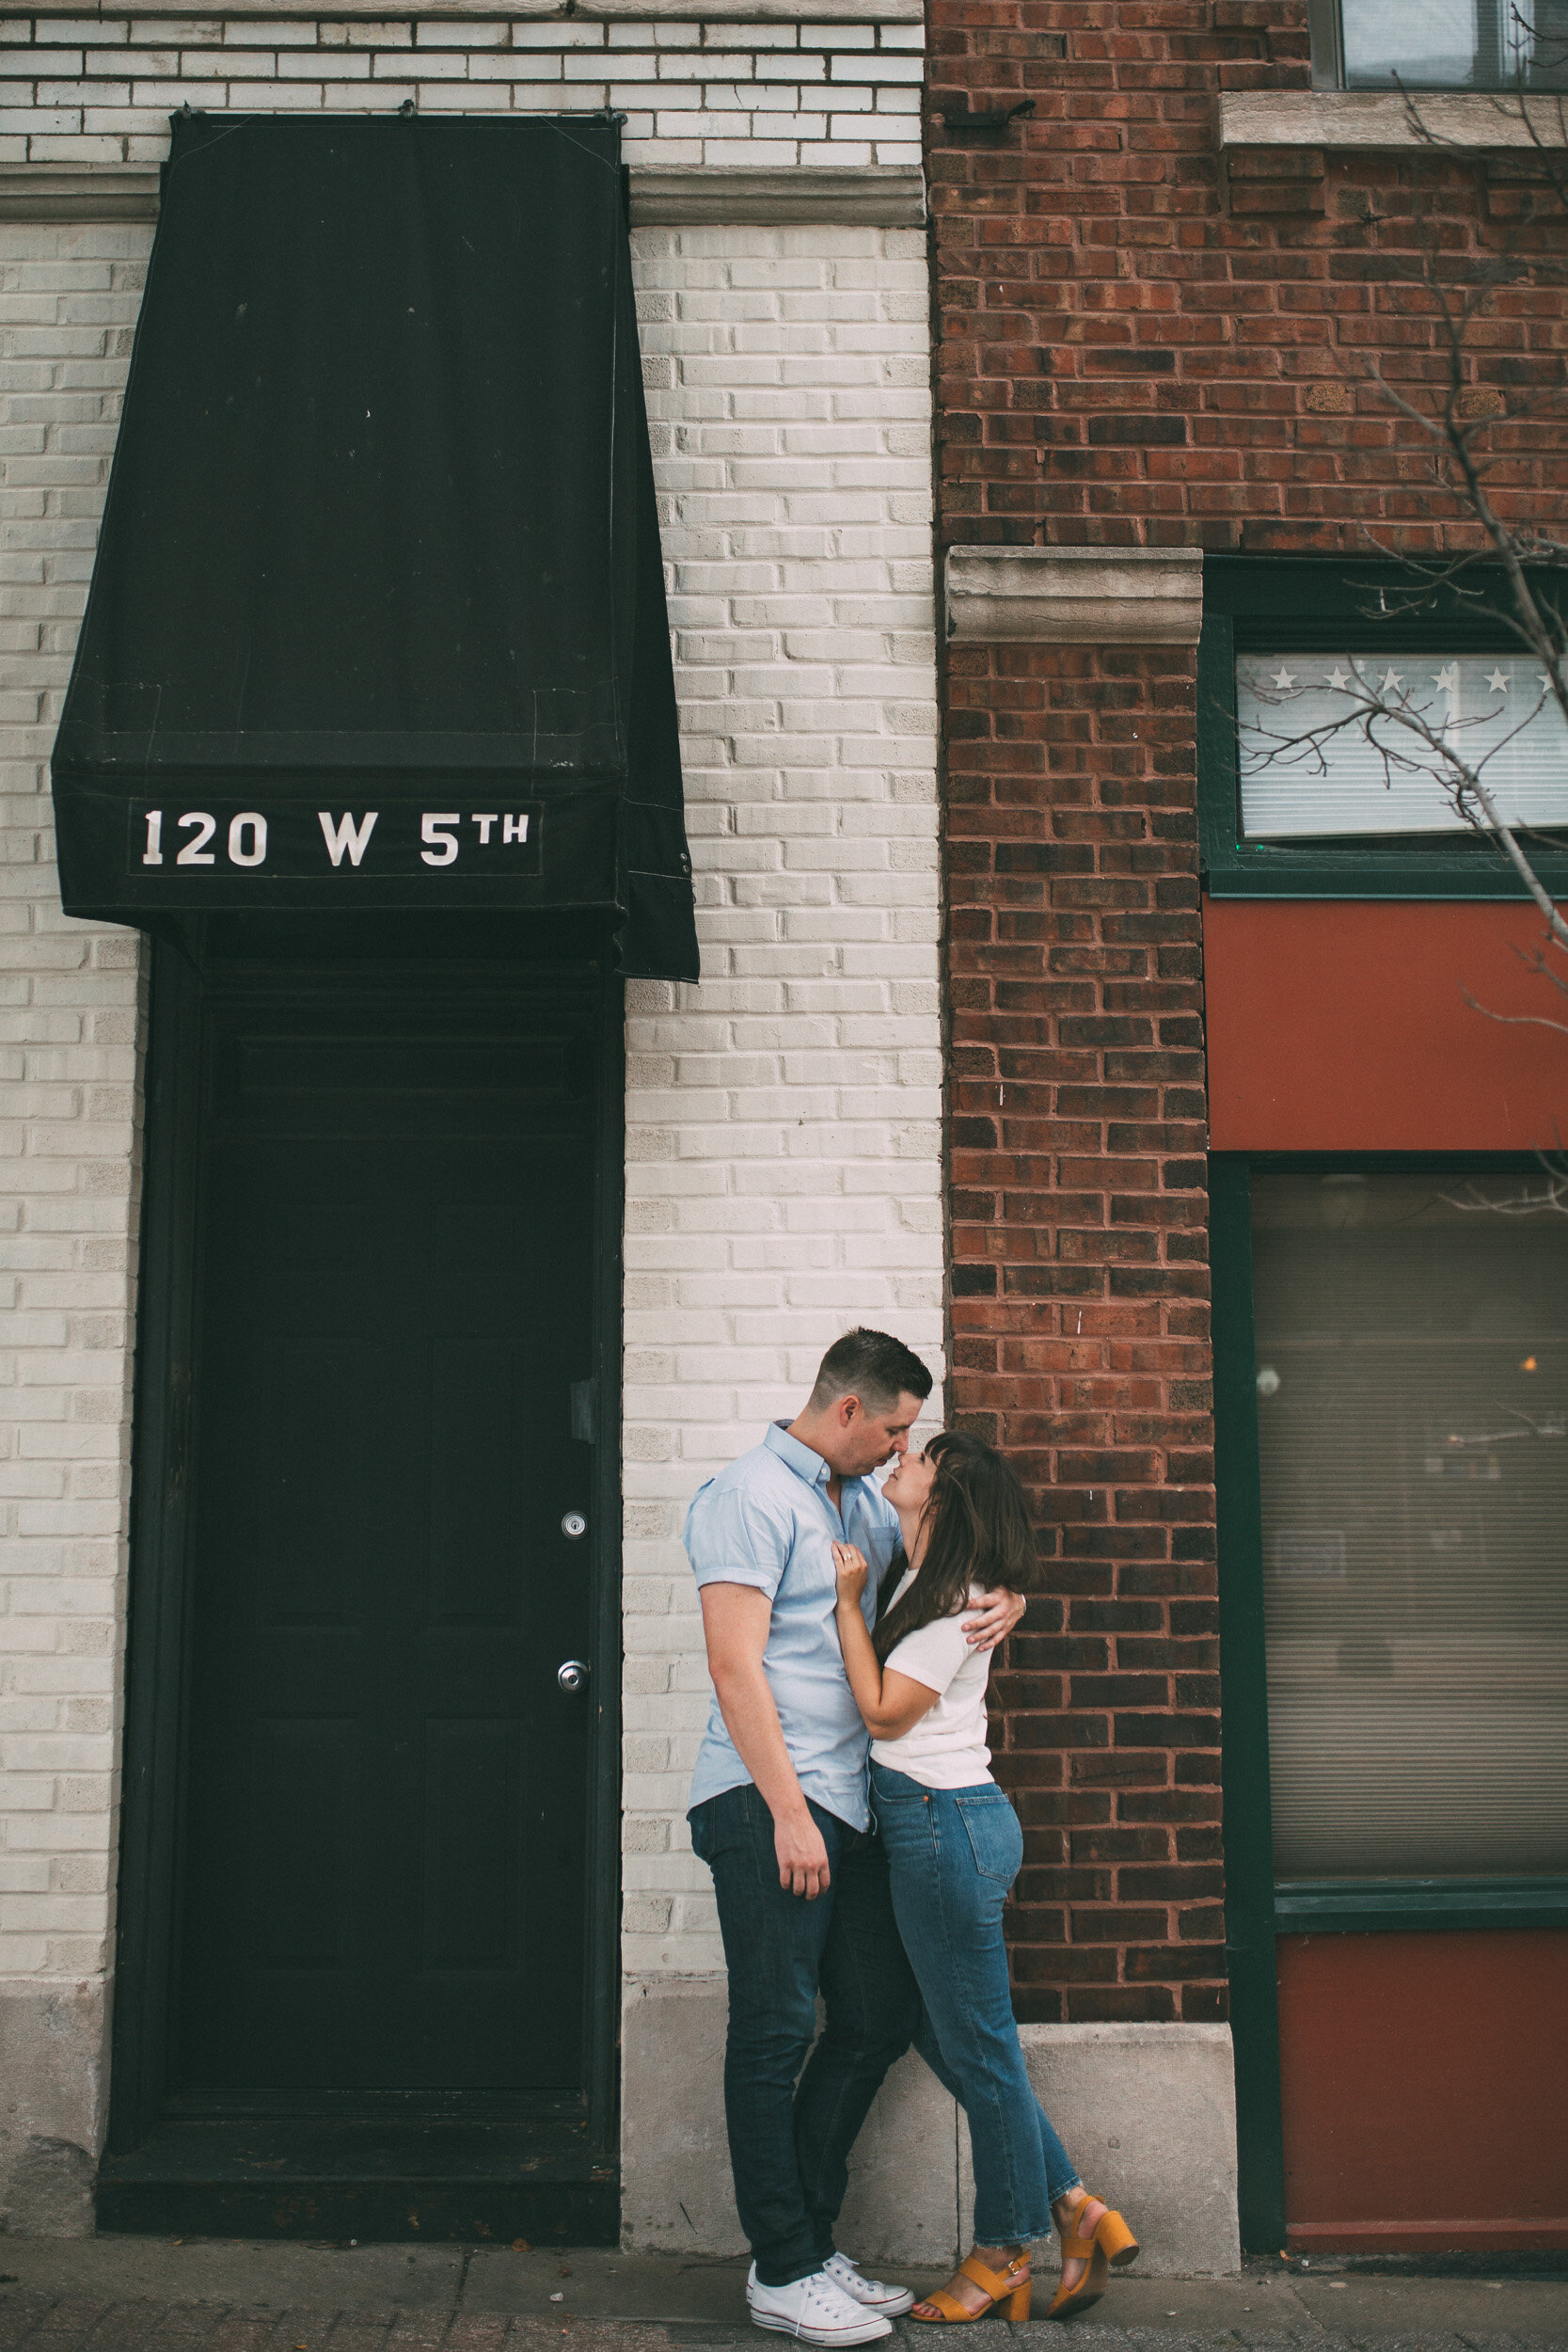 engagement photo on city street in front of brick storefront